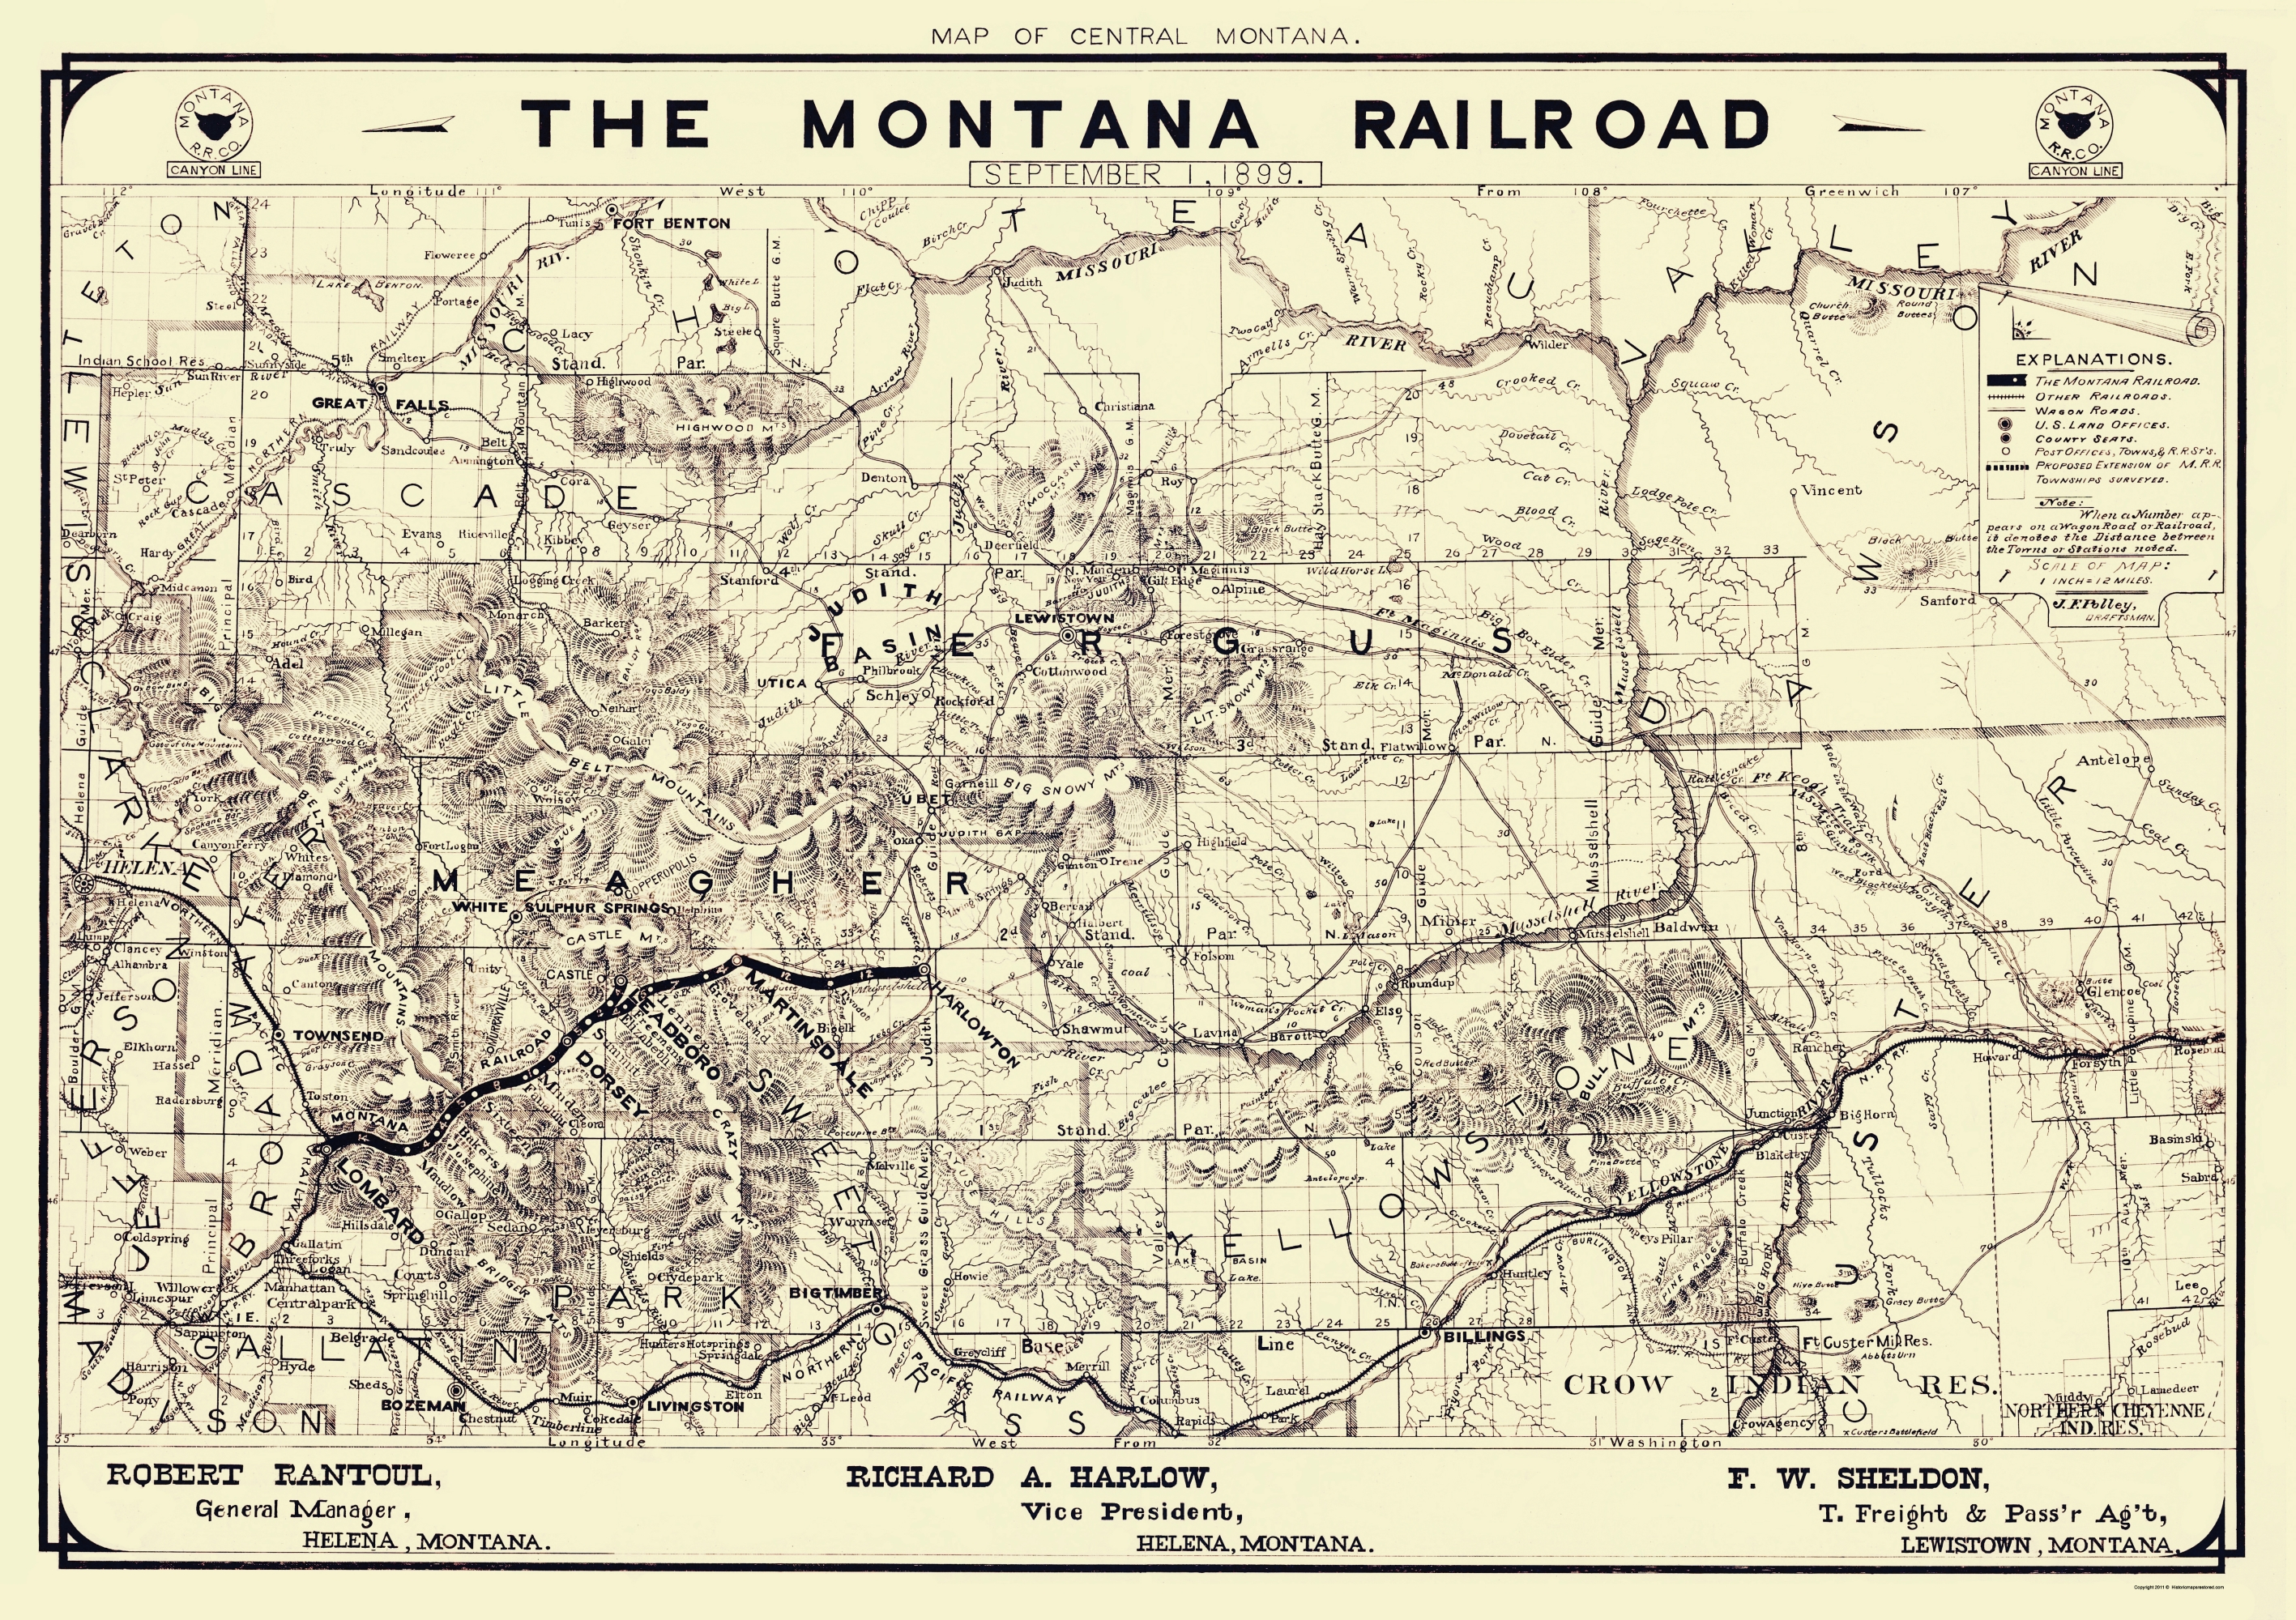 Old Railroad Map - Montana Railroad - Polley 1899 - 23 x 32.59